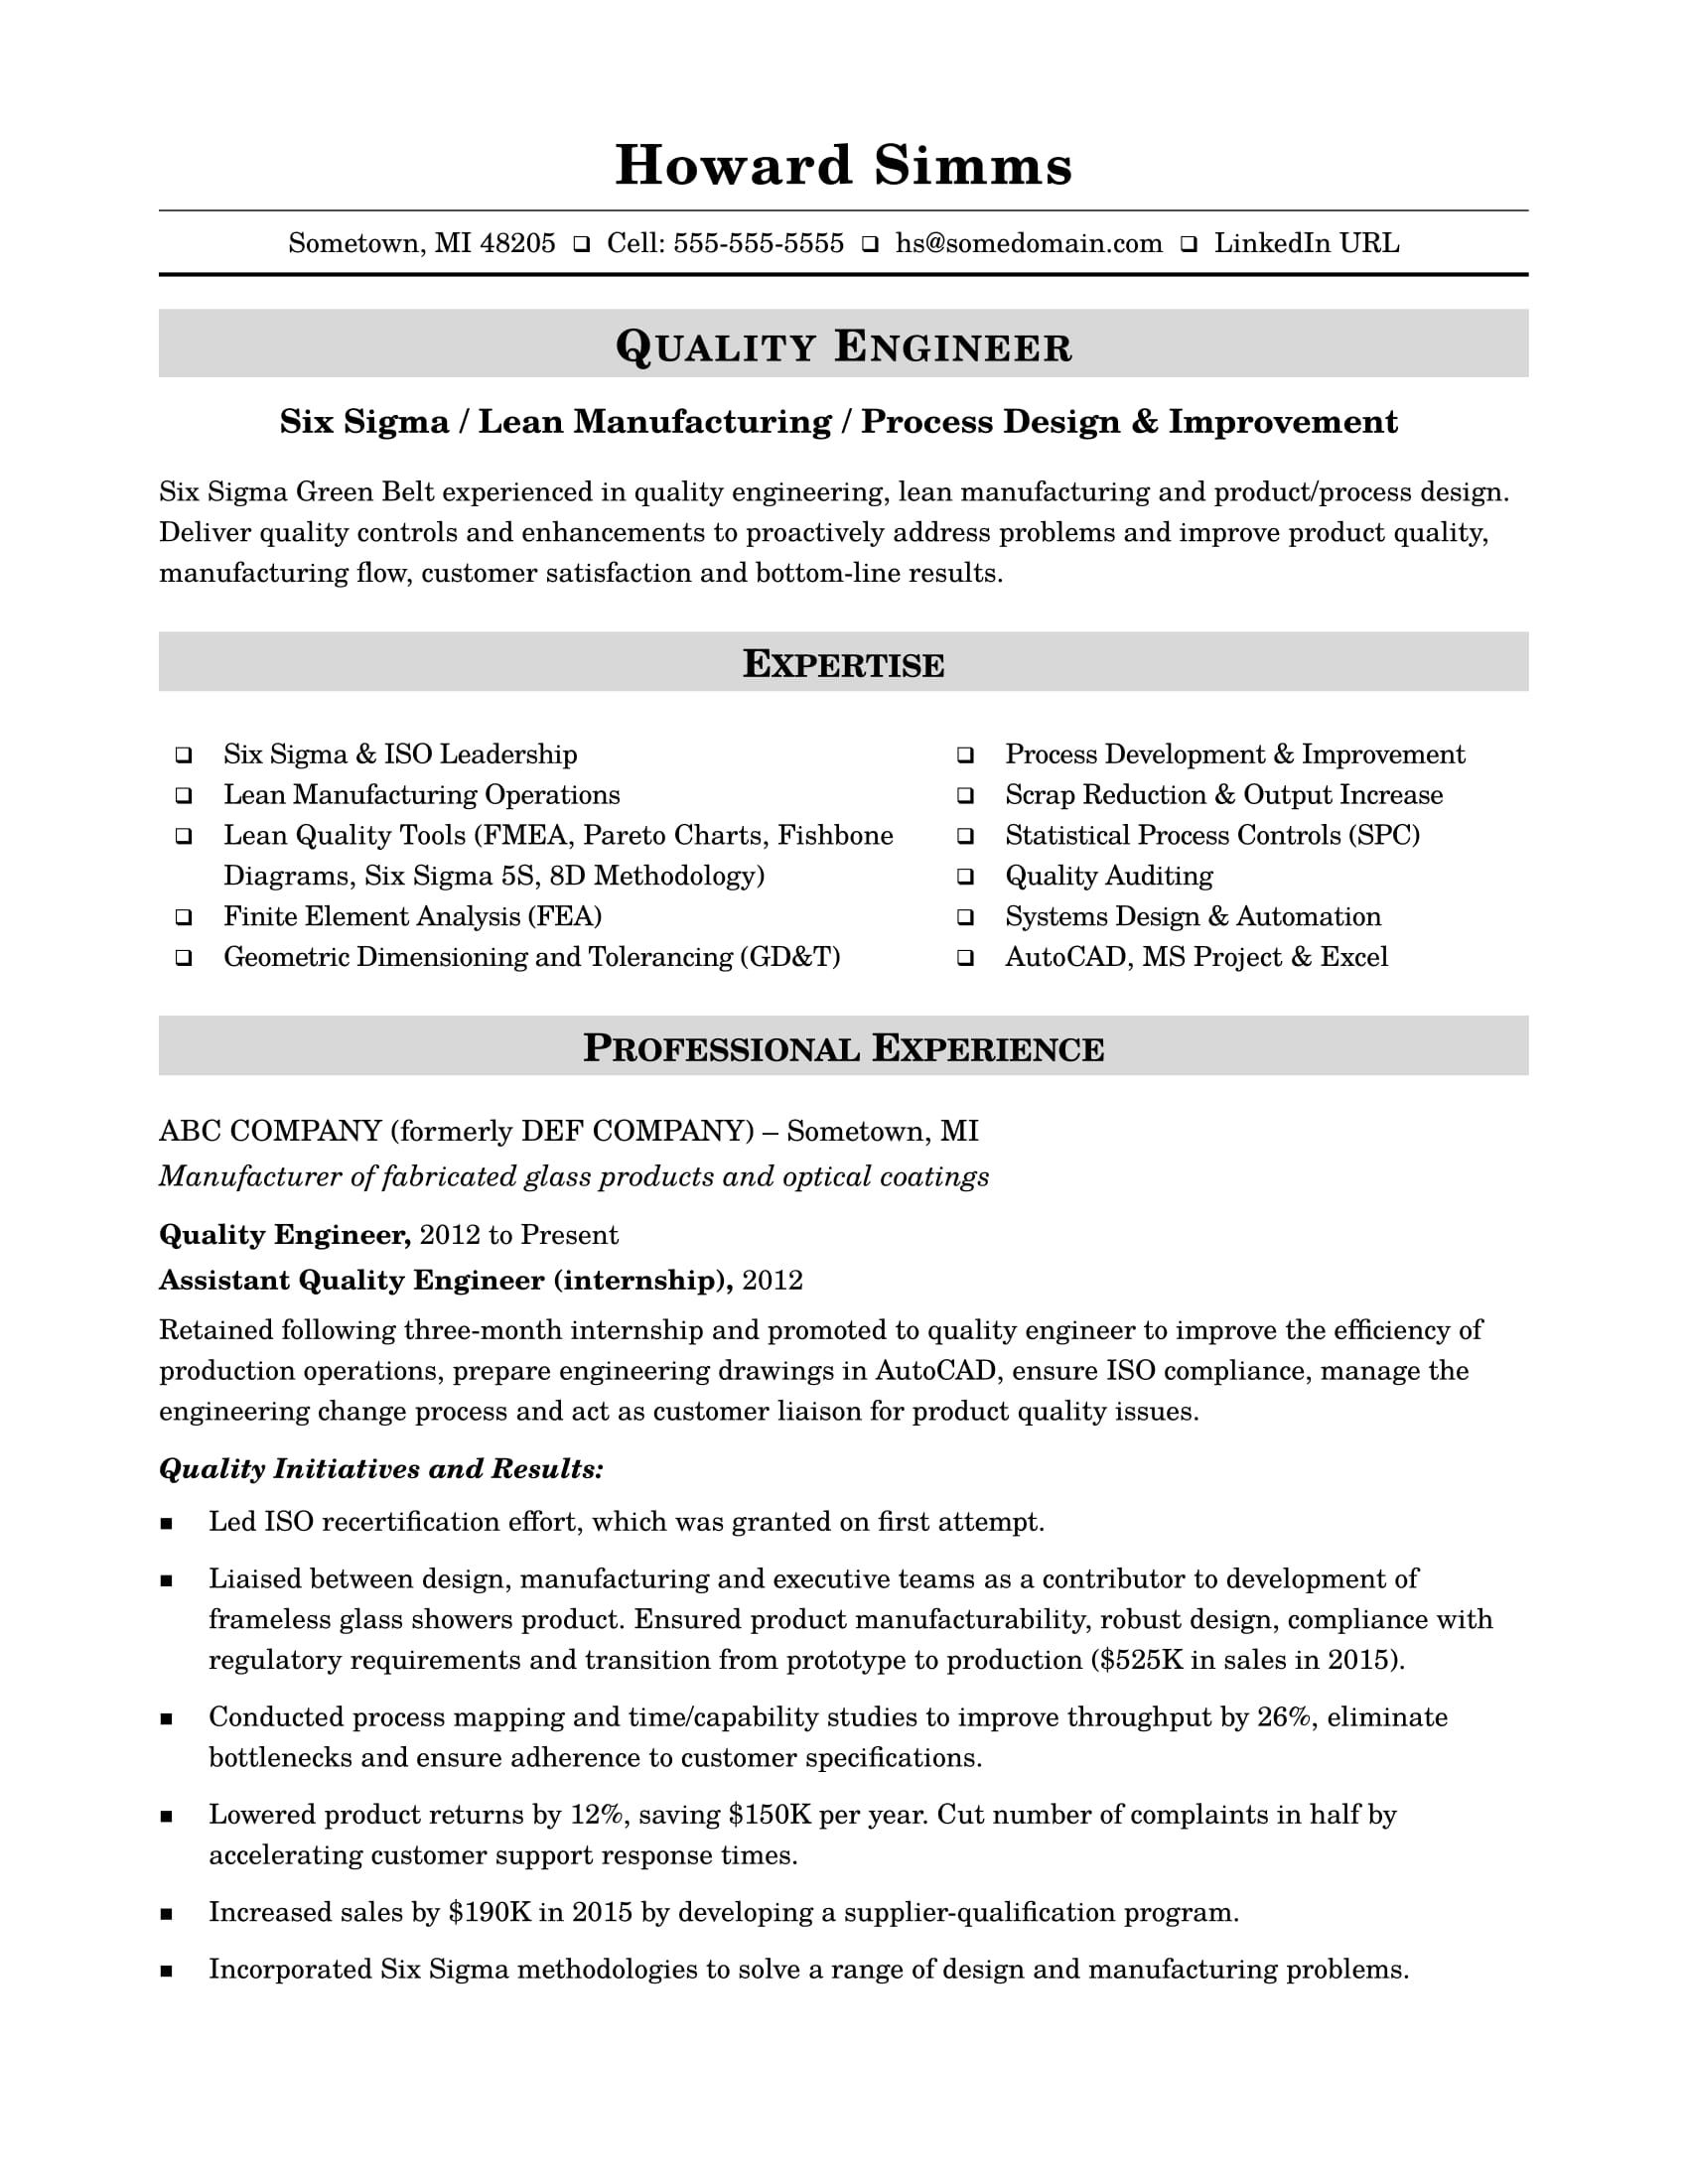 Sample resume for a midlevel quality engineer Resume